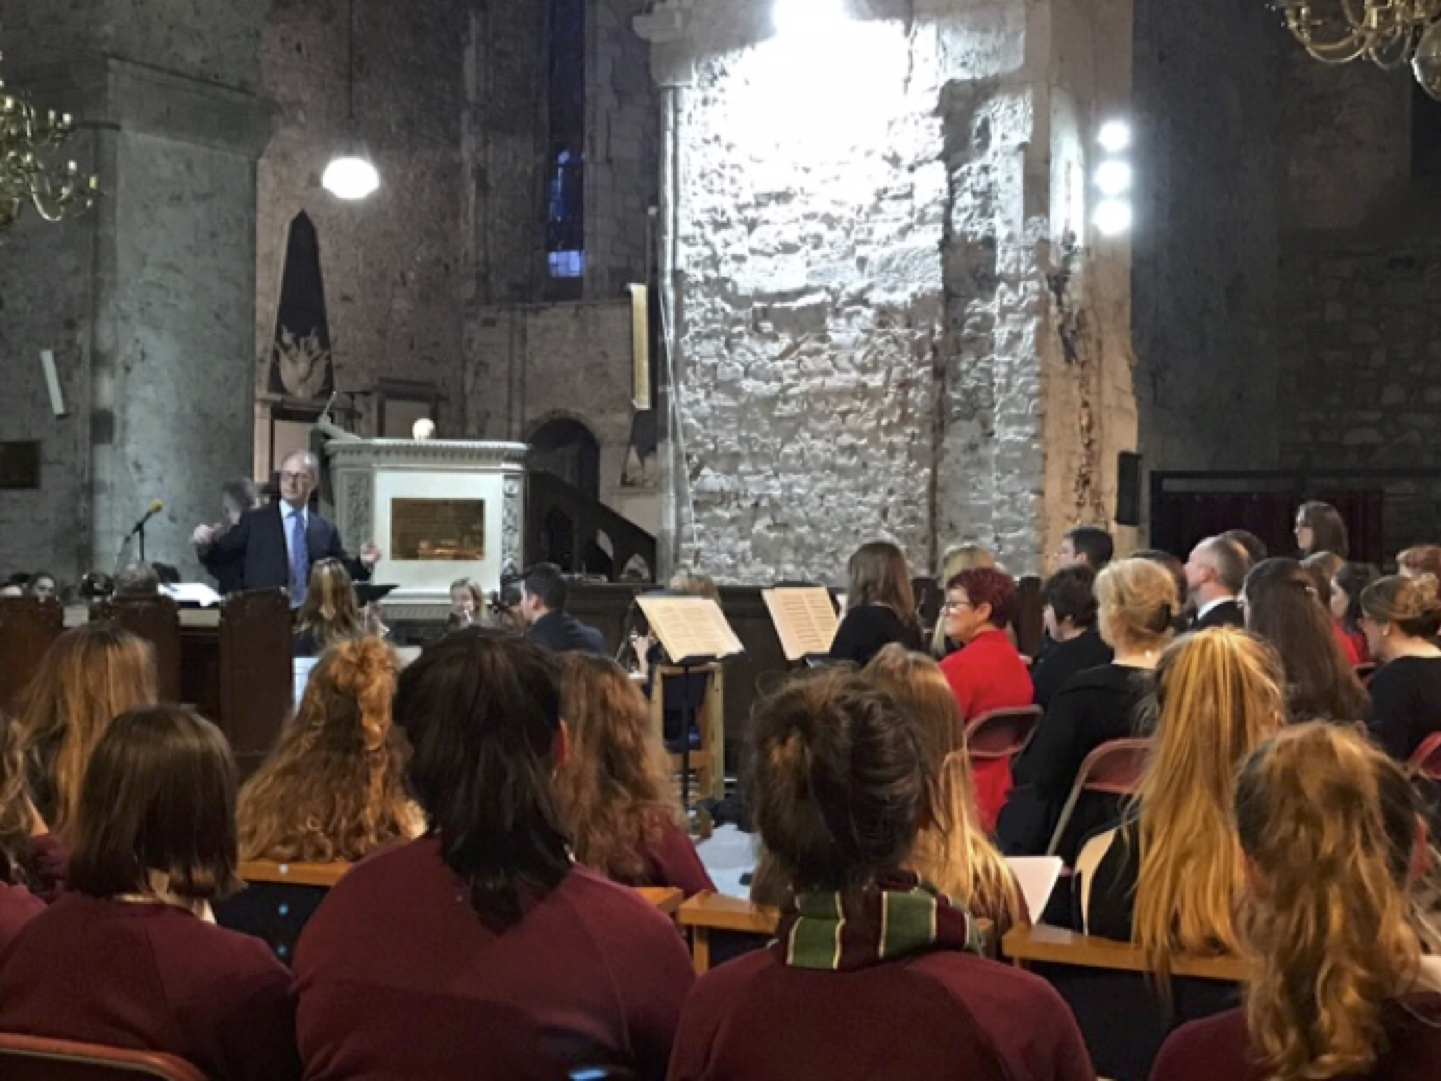 Oct 2017: Desmond College senior music students attend performance of Cantata BWV 78 Jesu, der du Meine Seele at St Mary's Cathedral in Limerick